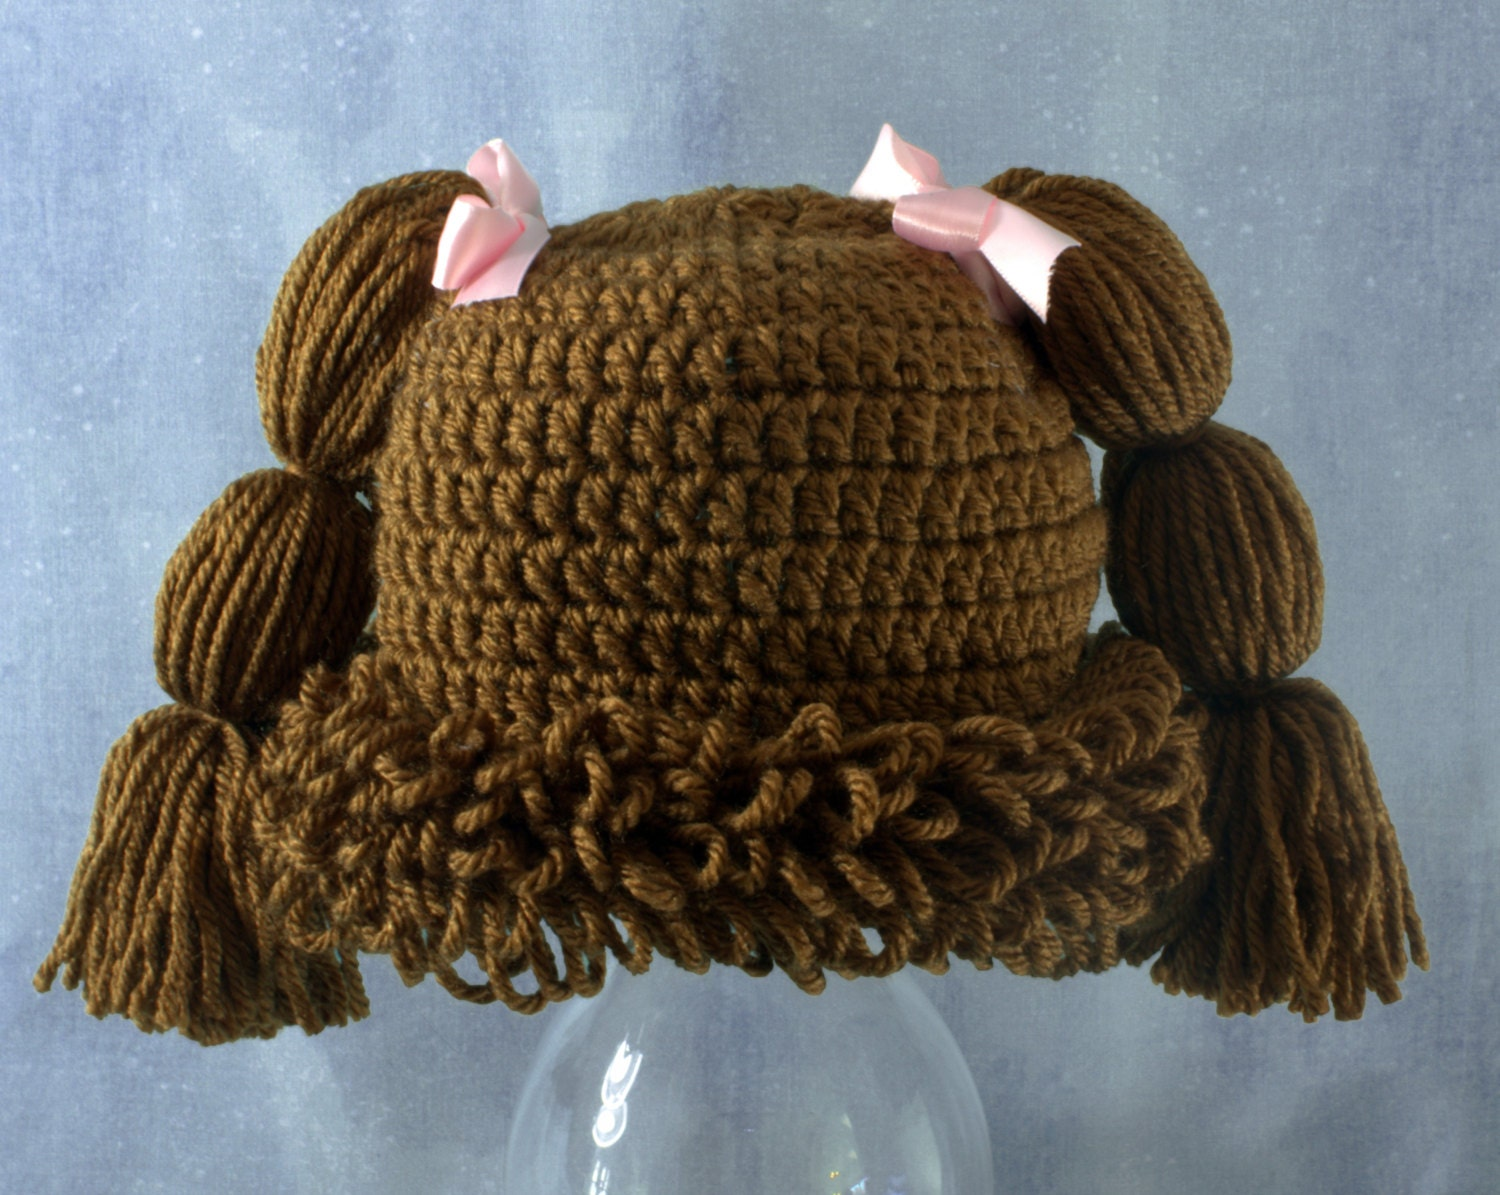 Crochet Pattern For Cabbage Patch Baby Hat : Cabbage Patch Kid Halloween Hat Crochet